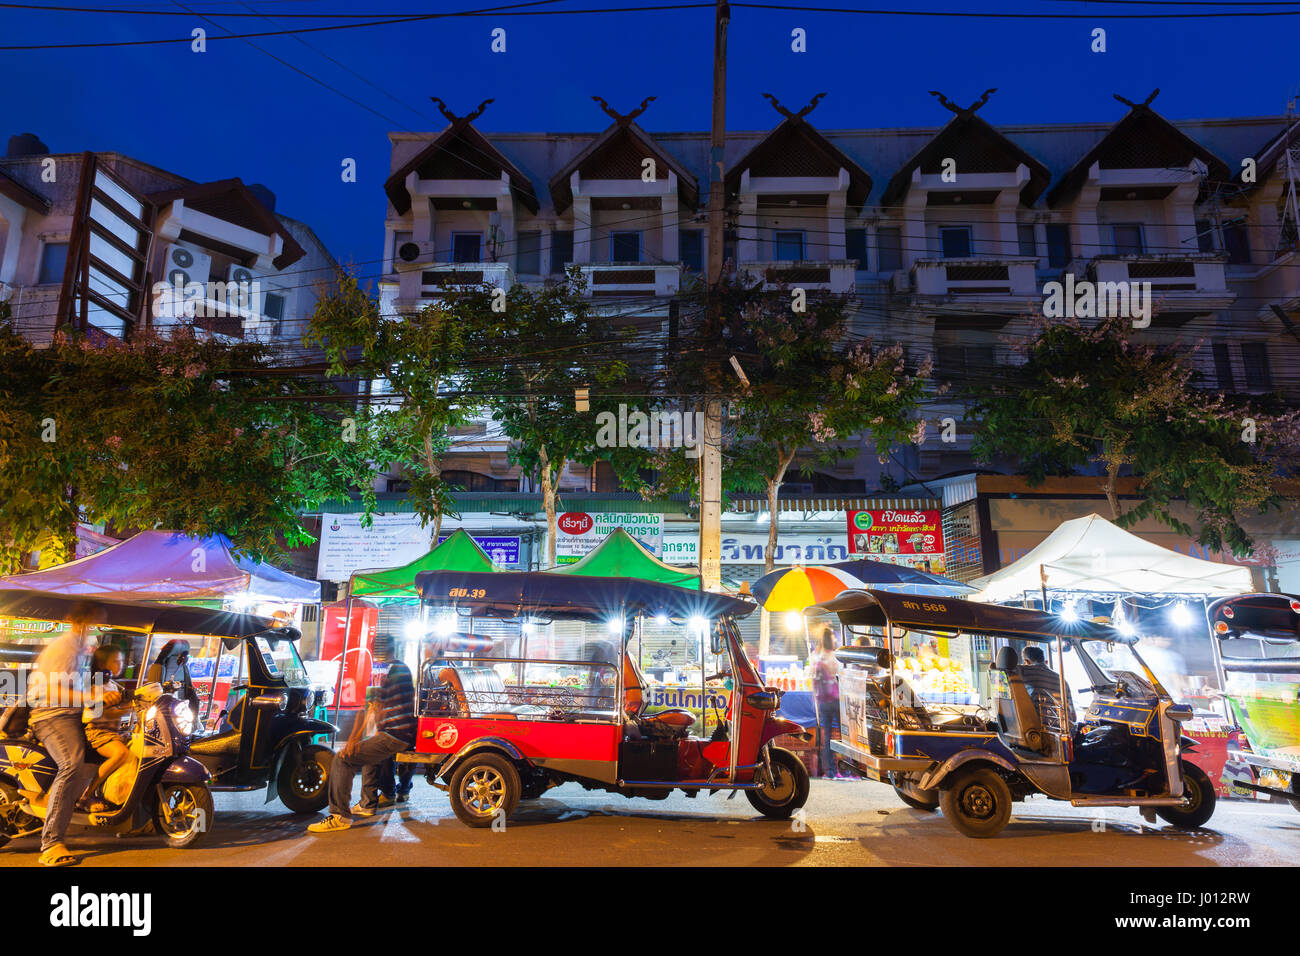 Chiang Mai, Thailand - August 21, 2016: Tuk-tuk taxis wait for customers near Saturday Night Market on August 21, Stock Photo